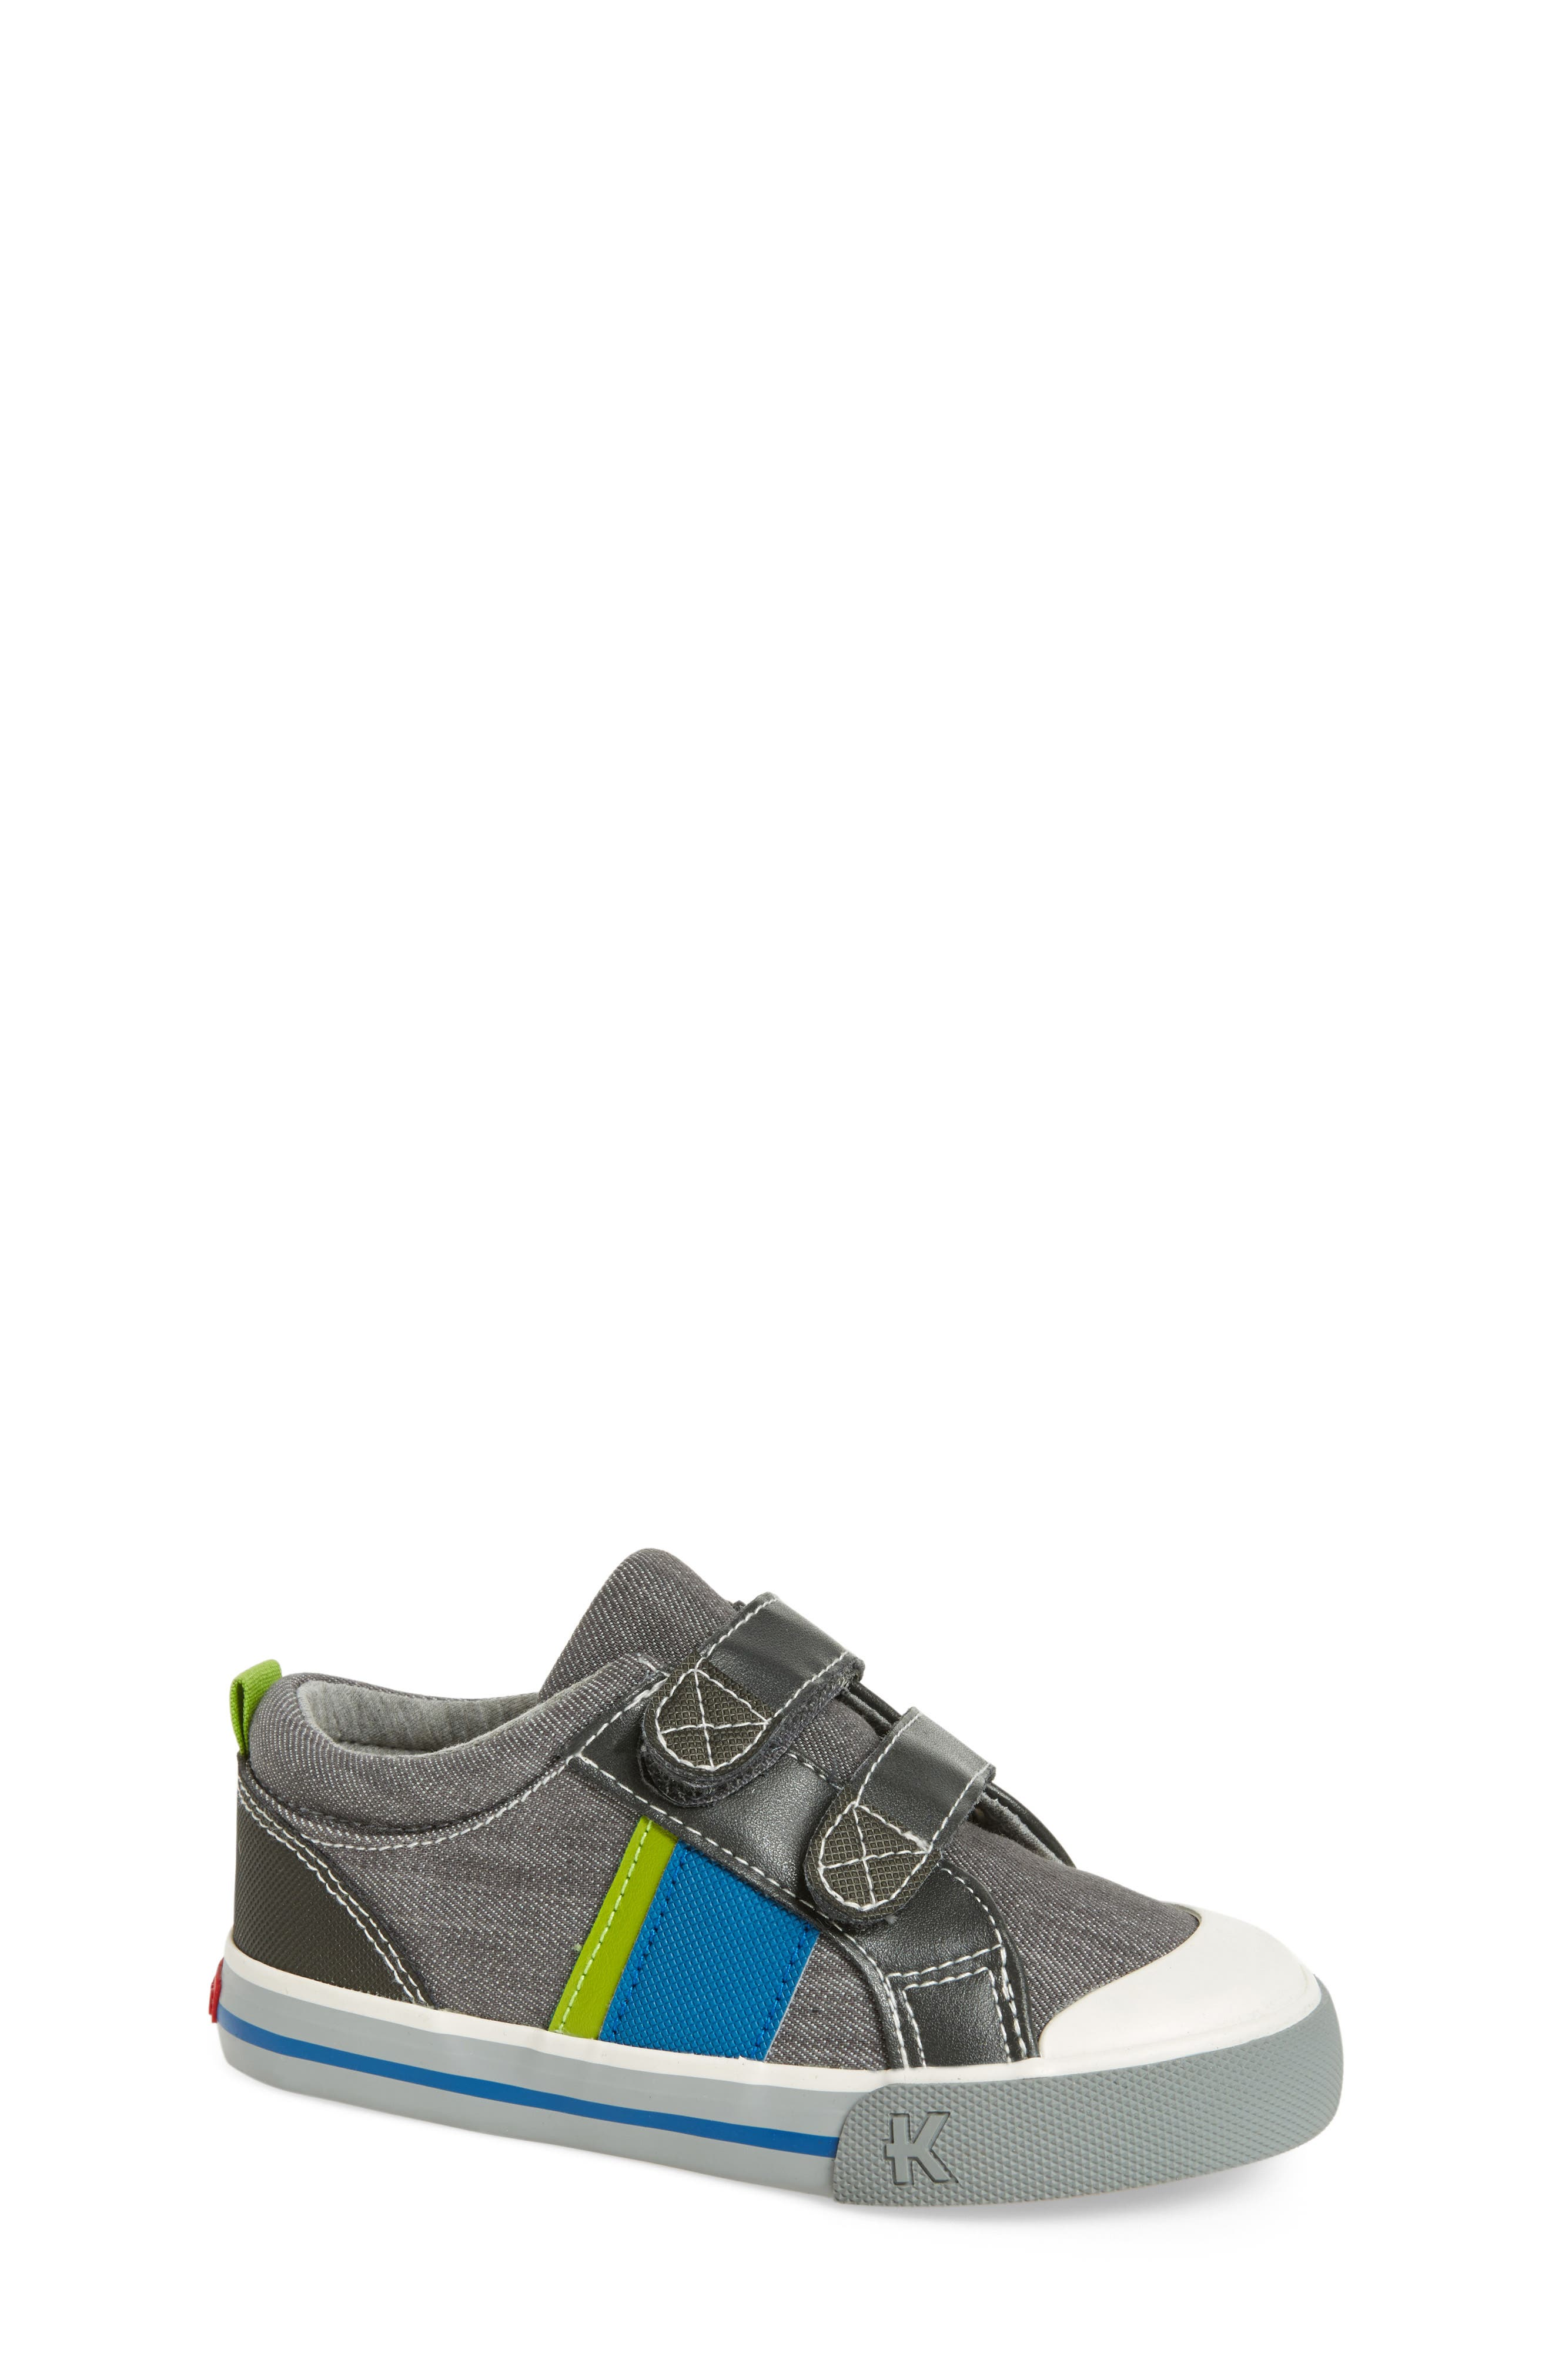 Russell Sneaker,                         Main,                         color, 020